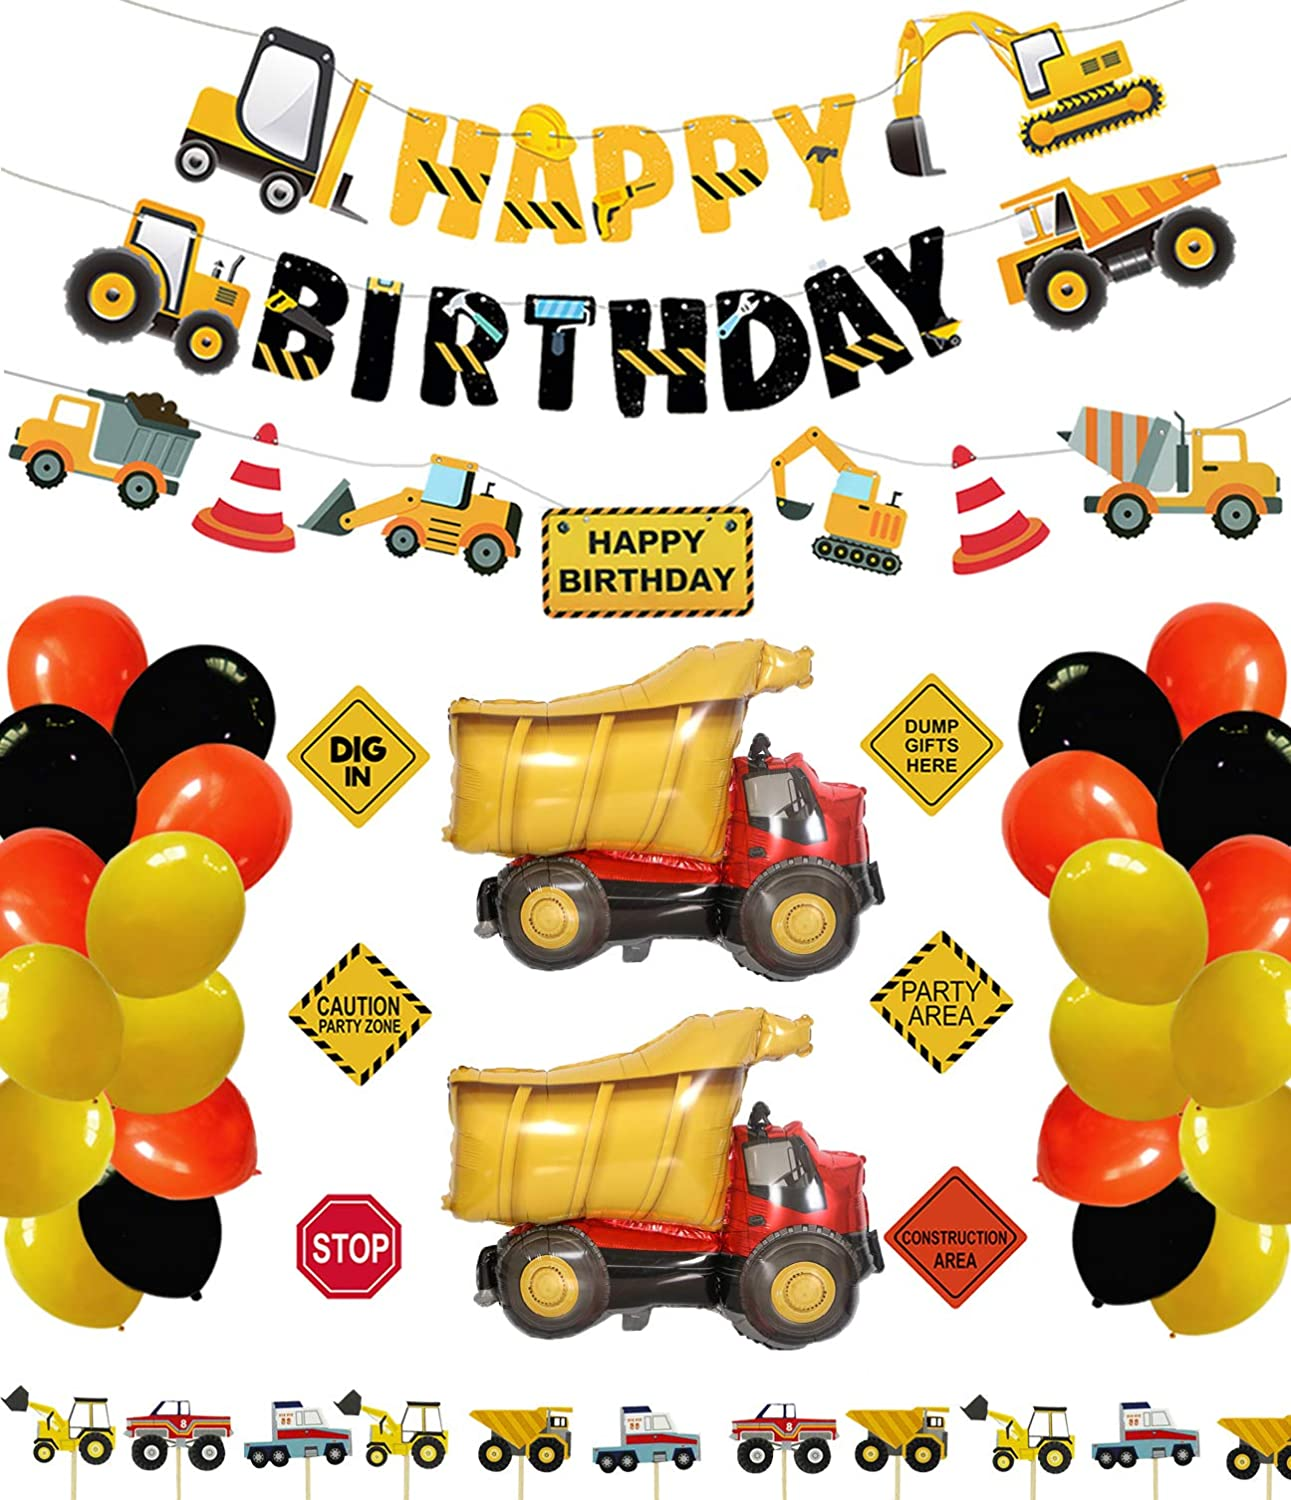 Construction Birthday Party Supplies Dump Truck Party Decorations Kits Set with 2 foil balloons for Kids Birthday Party 52 pack